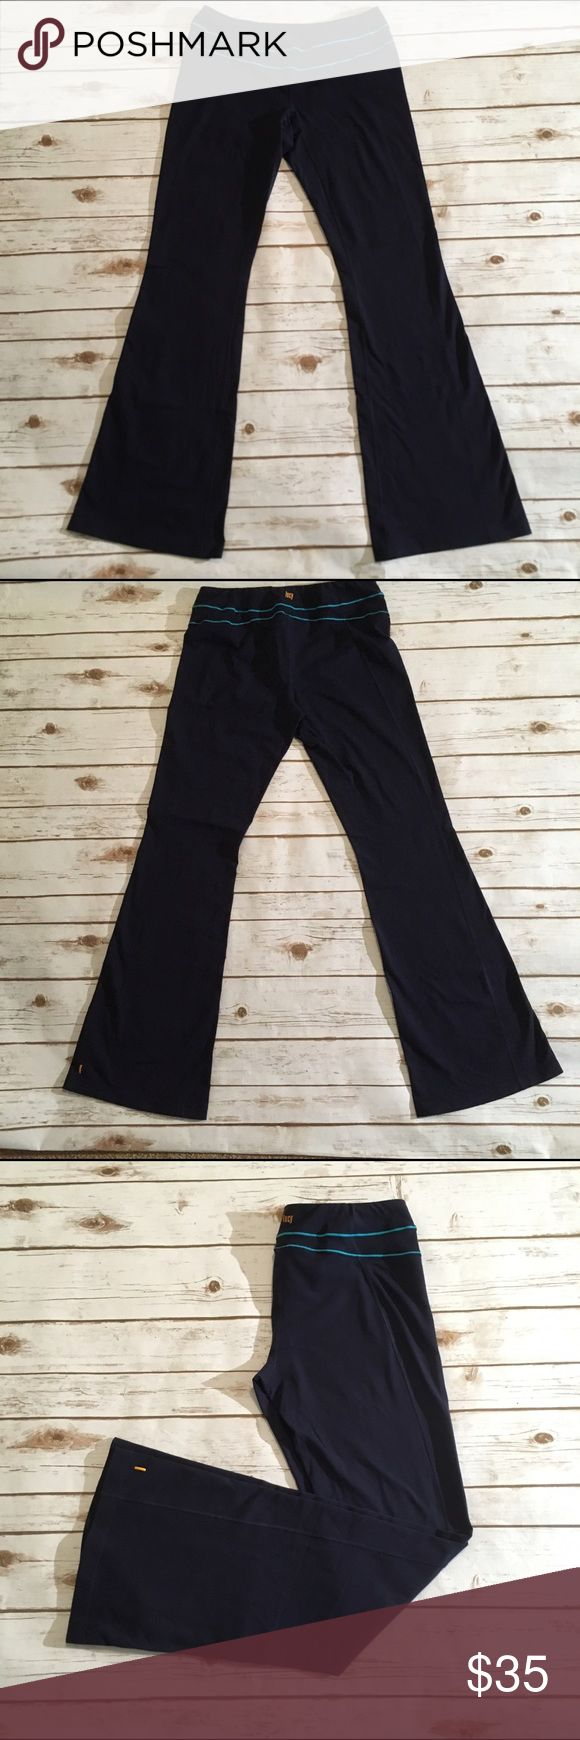 """Lucy navy blue tall yoga pants Lucy Navy blue yoga pants  🌟Size- Women's L tall 🌟Flat Measurements-14.5"""" waist 8.5"""" rise 35"""" inseam 🌟Material- 87% supple nylon 13% Lycra 🌟Condition- Excellent used condition, very little pilling in spots Lucy Pants"""